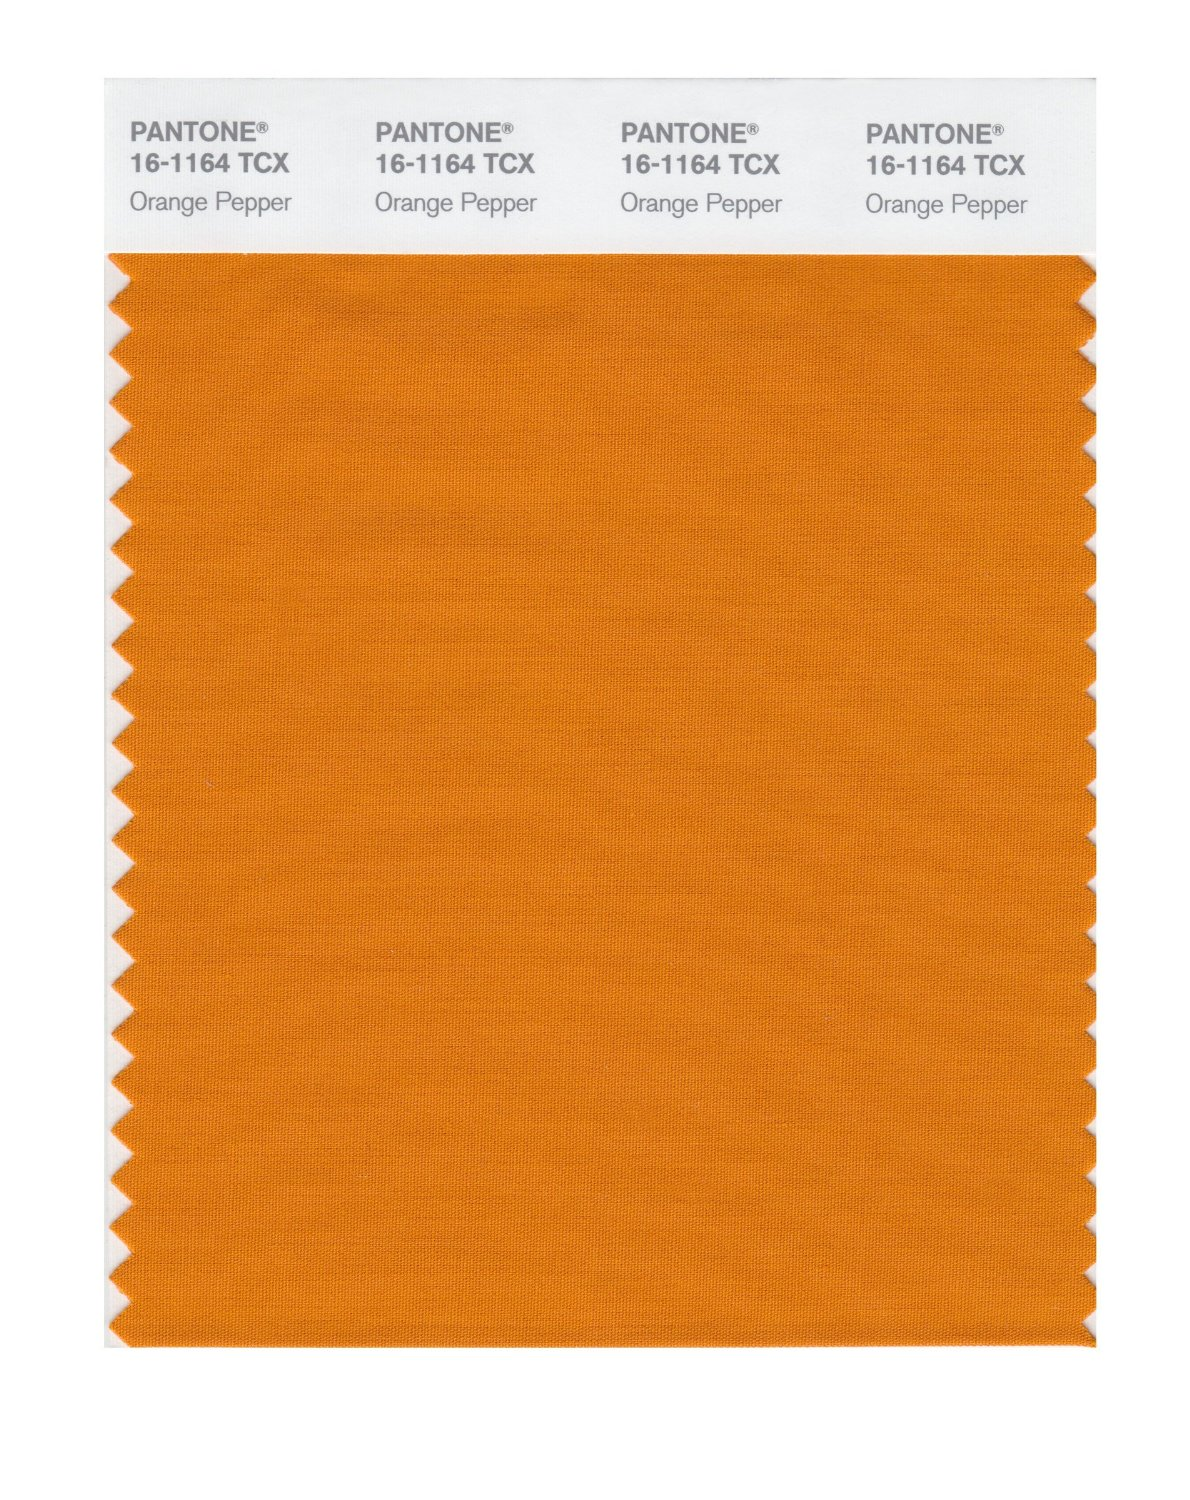 Pantone Smart Swatch 16-1164 Orange Pepper